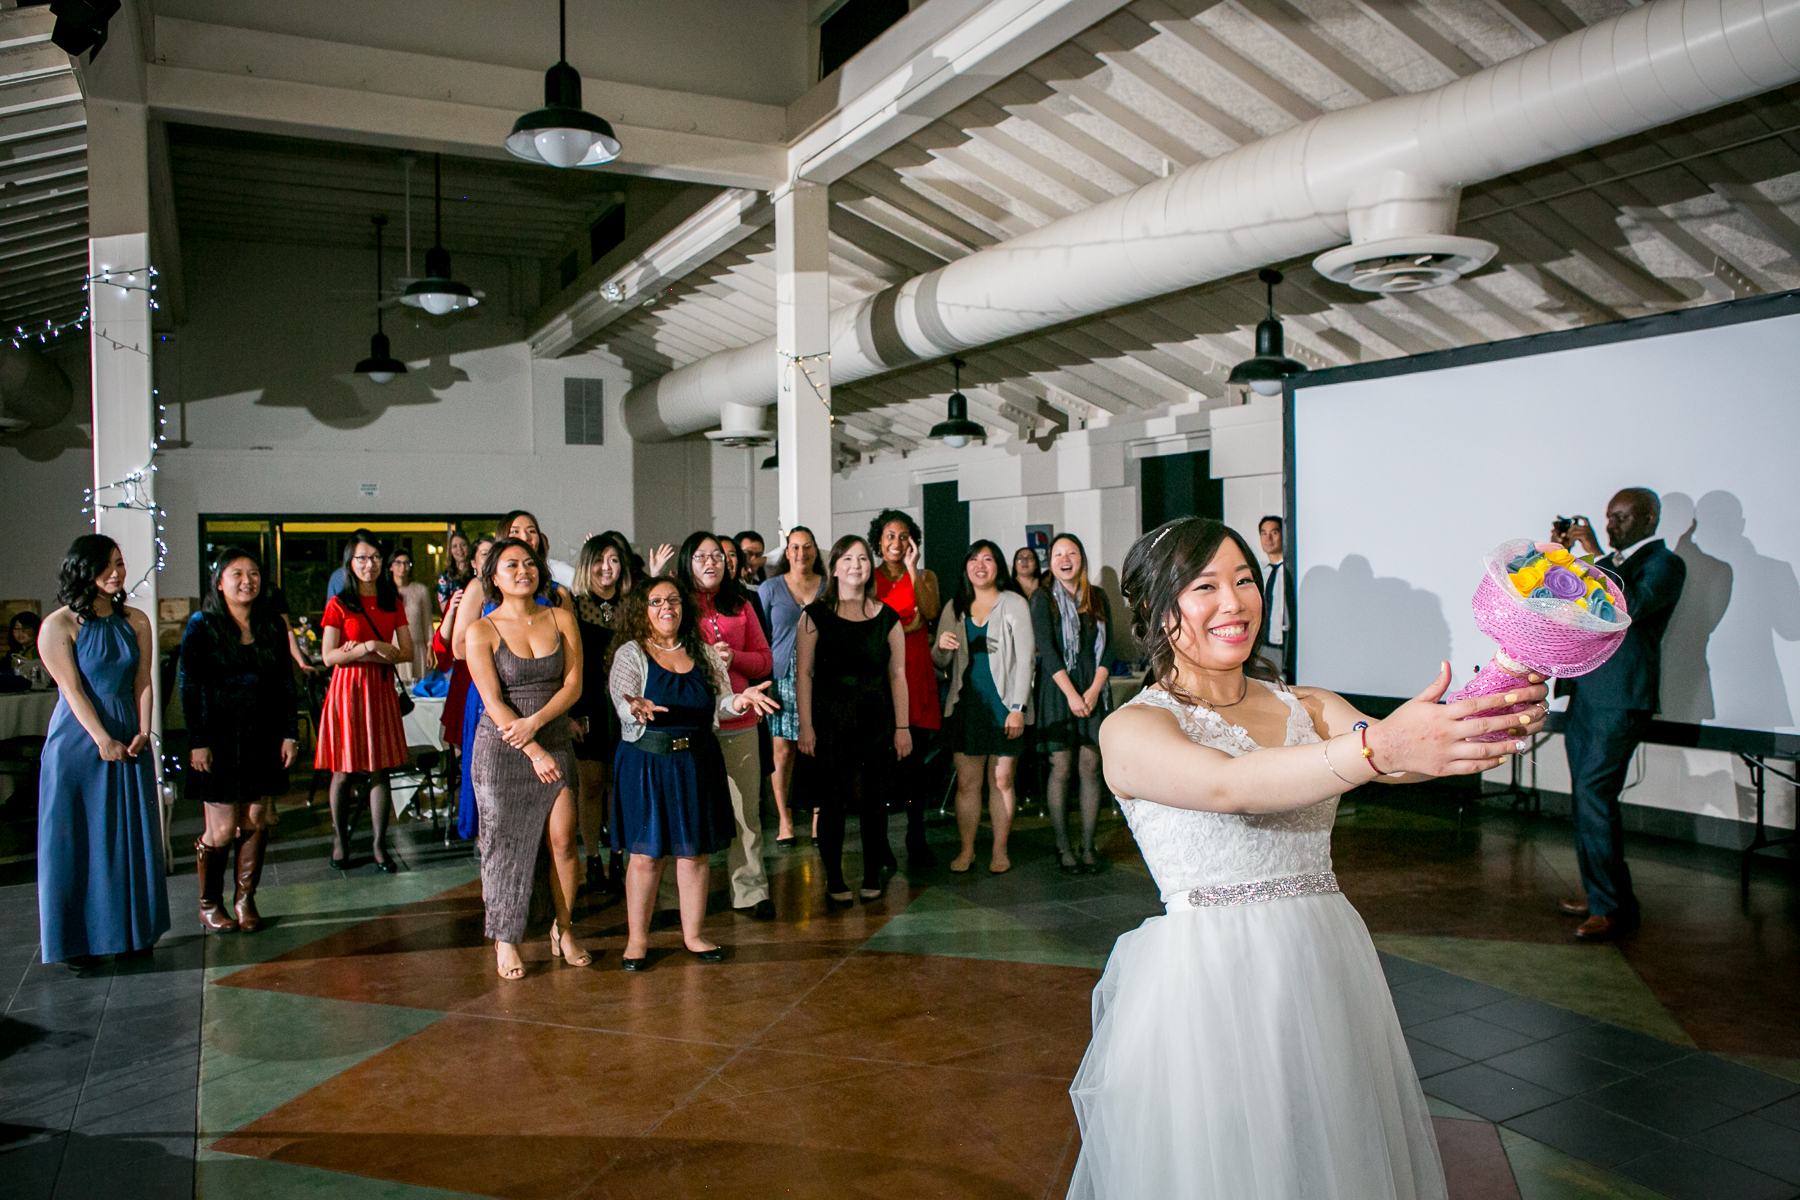 bride preps to toss the bridal bouquet at wedding at chino hills